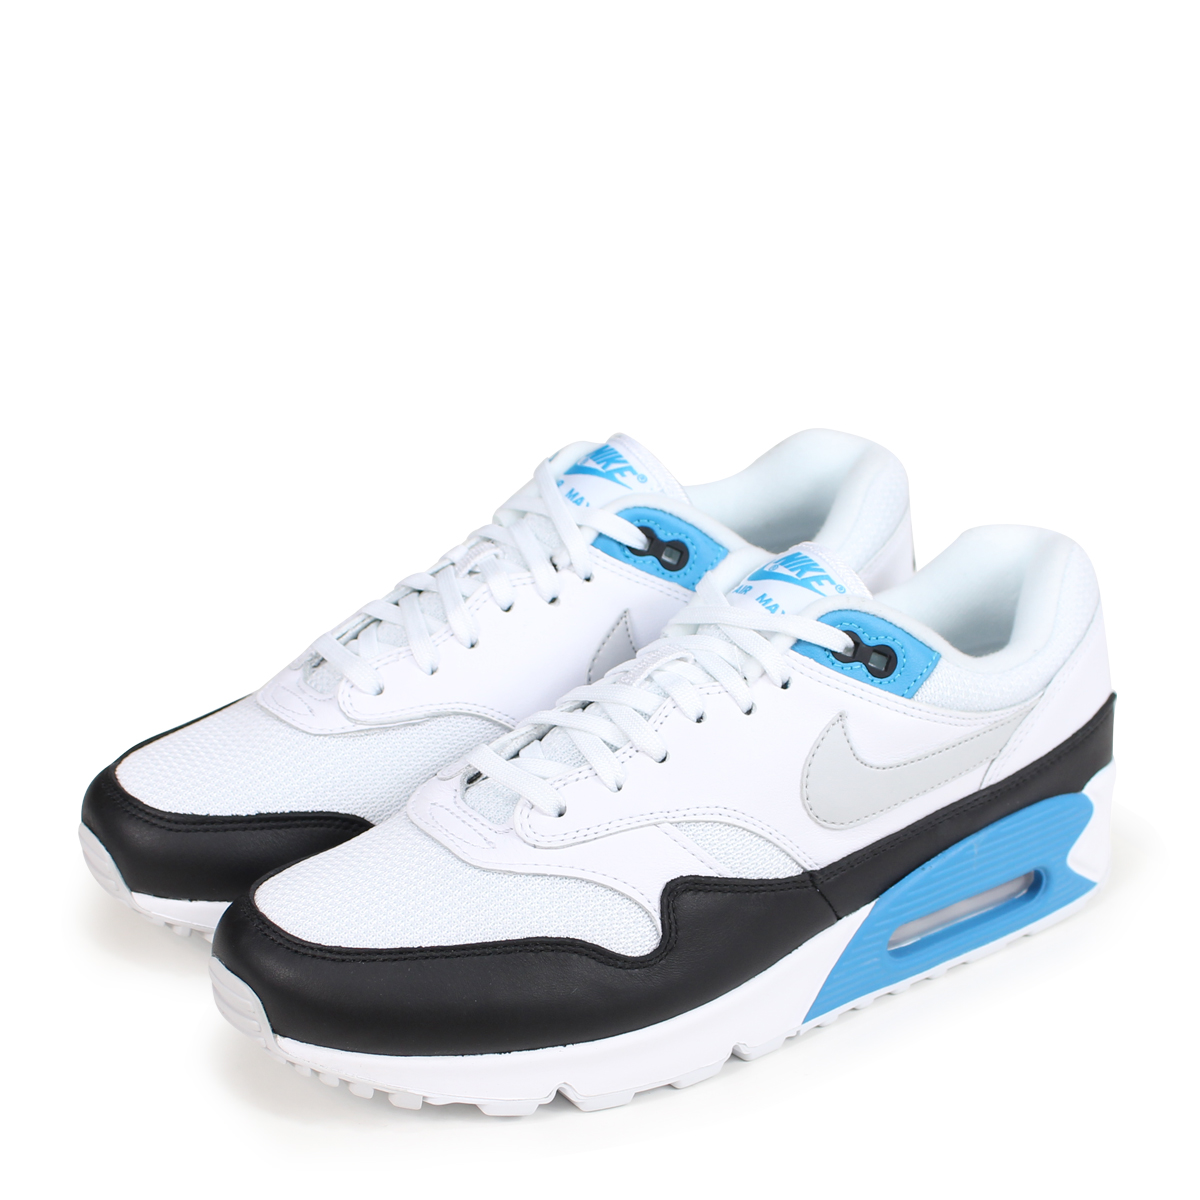 best sneakers 8f164 35d35 NIKE AIR MAX 90 1 Kie Ney AMAX 90 1 sneakers men AJ7695-104 white  load  planned Shinnyu load in reservation product 8 18 containing   188